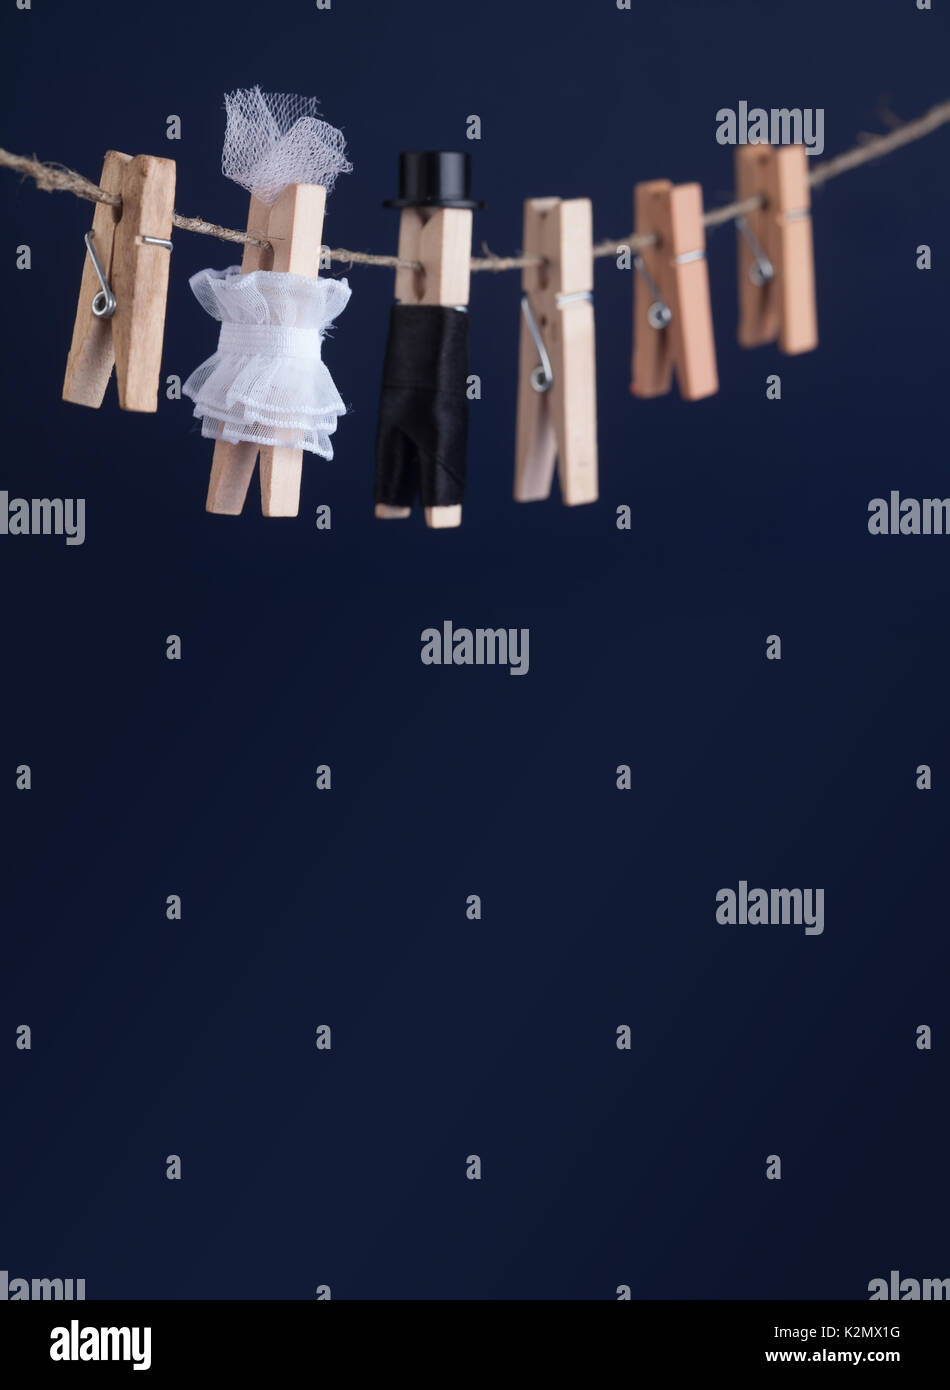 Wedding invitation card with bride and groom clothespin toys on clothesline. Abstract woman in white wedding dress - Stock Image